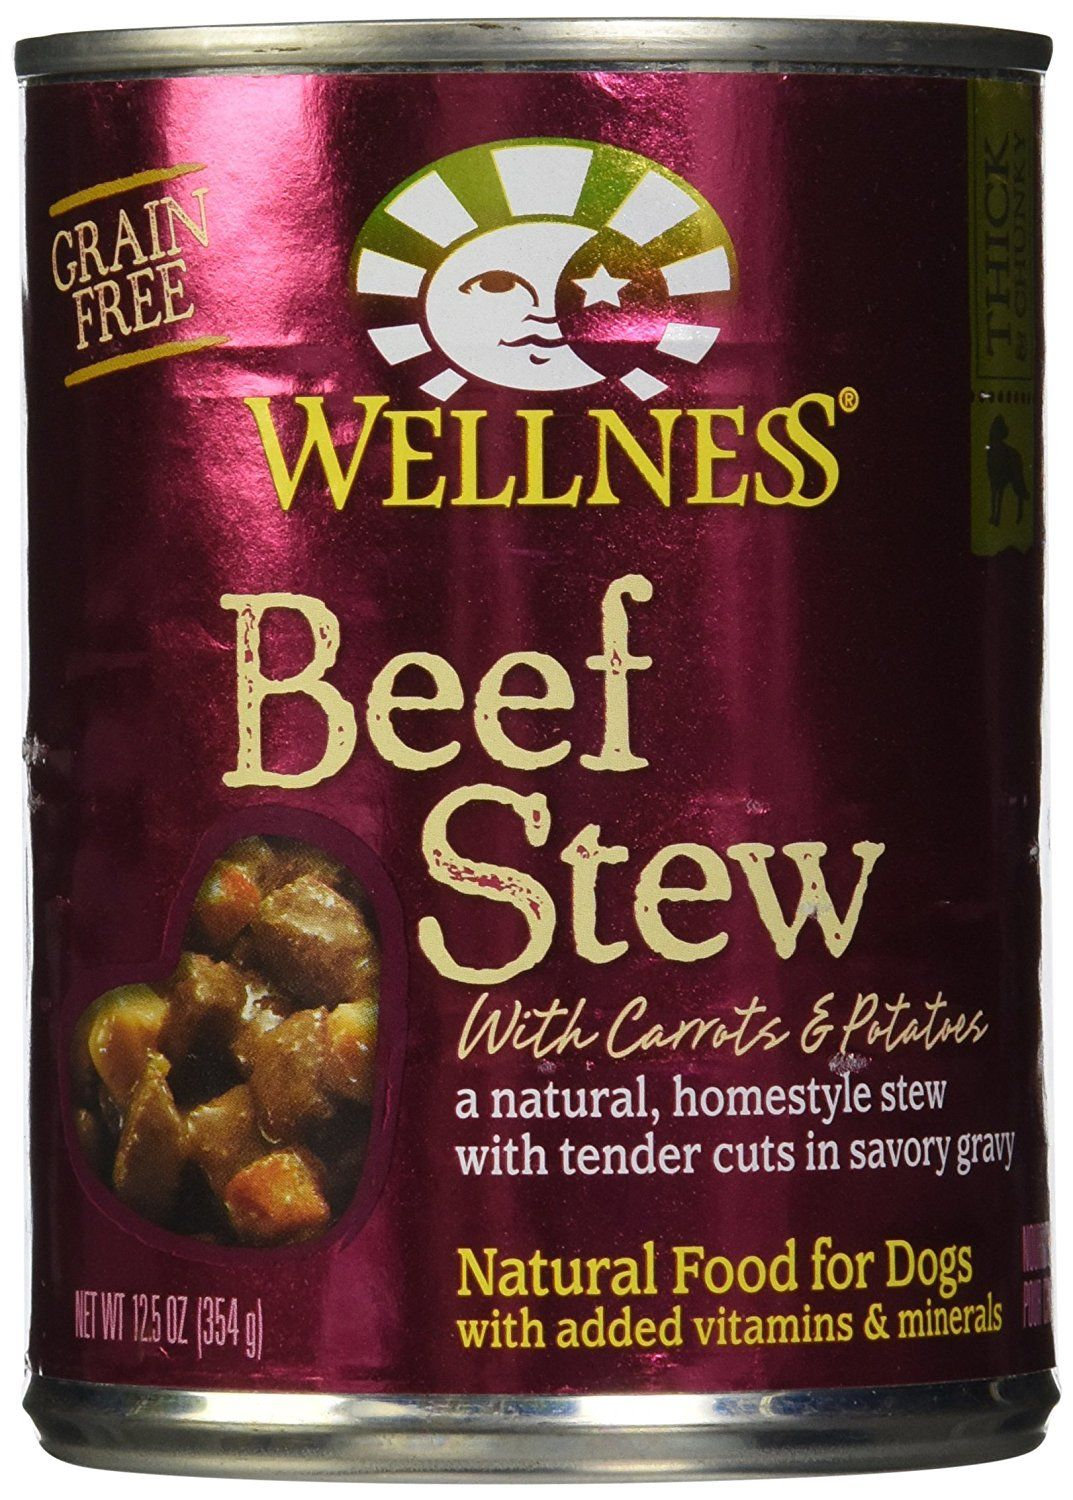 Wellness Dog Food Stew Carrot and Potato Can, Beef, 12.5